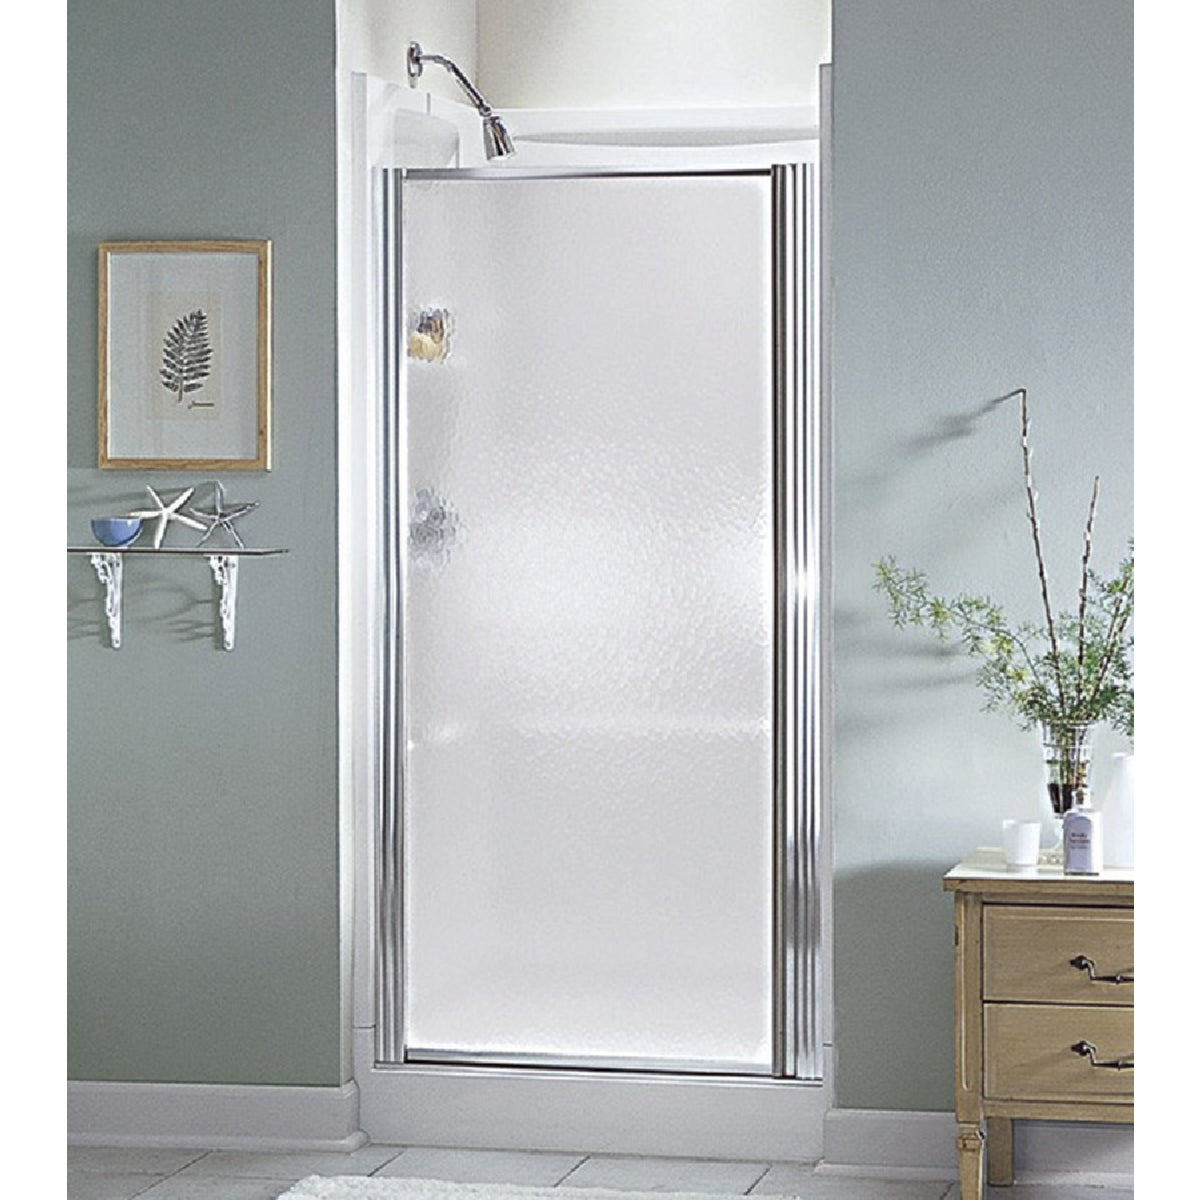 23-1/2-25 PIVOT SHW DR - 950C-24S by Sterling Doors